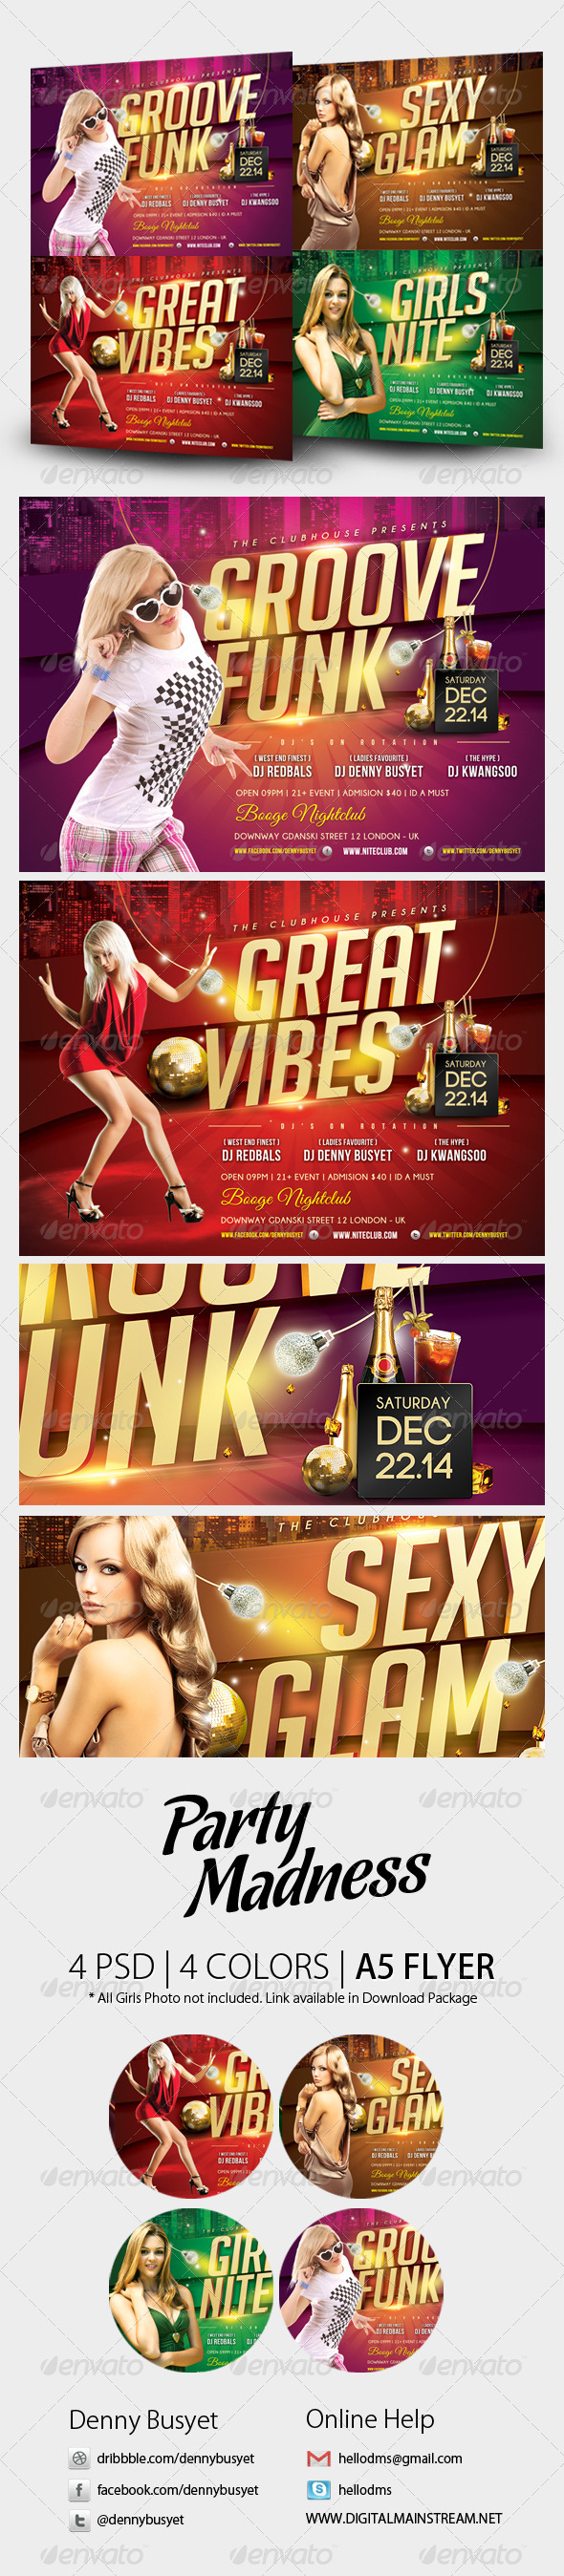 Party Madness Nightclub Psd Flyer Template - Events Flyers